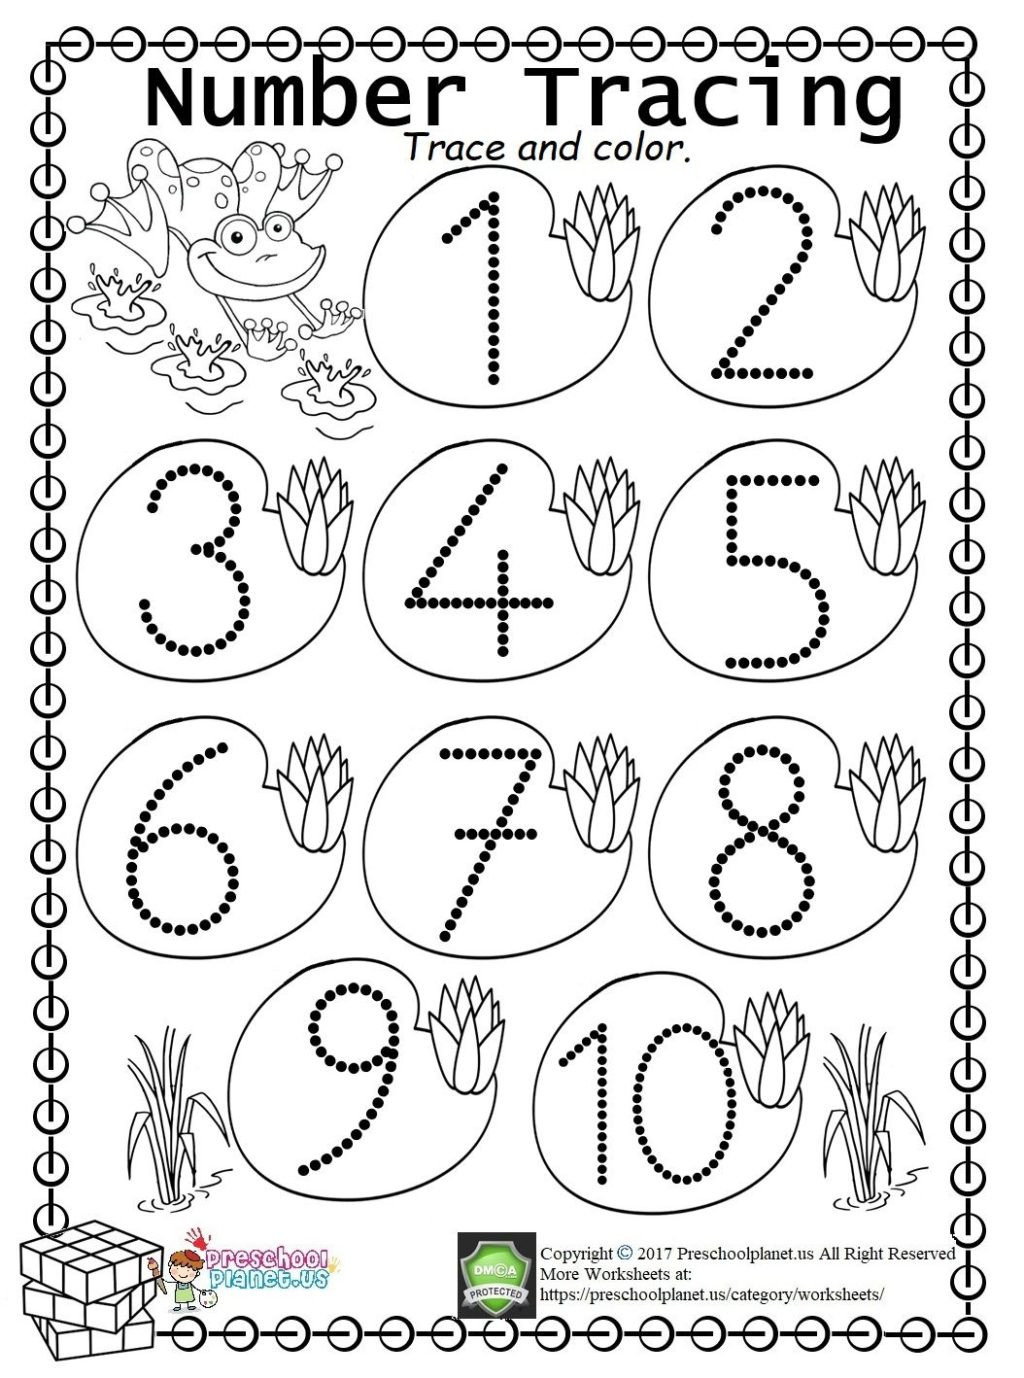 Preschool Number Tracing Worksheet Worksheet Stunning Tracin S for Kindergarten